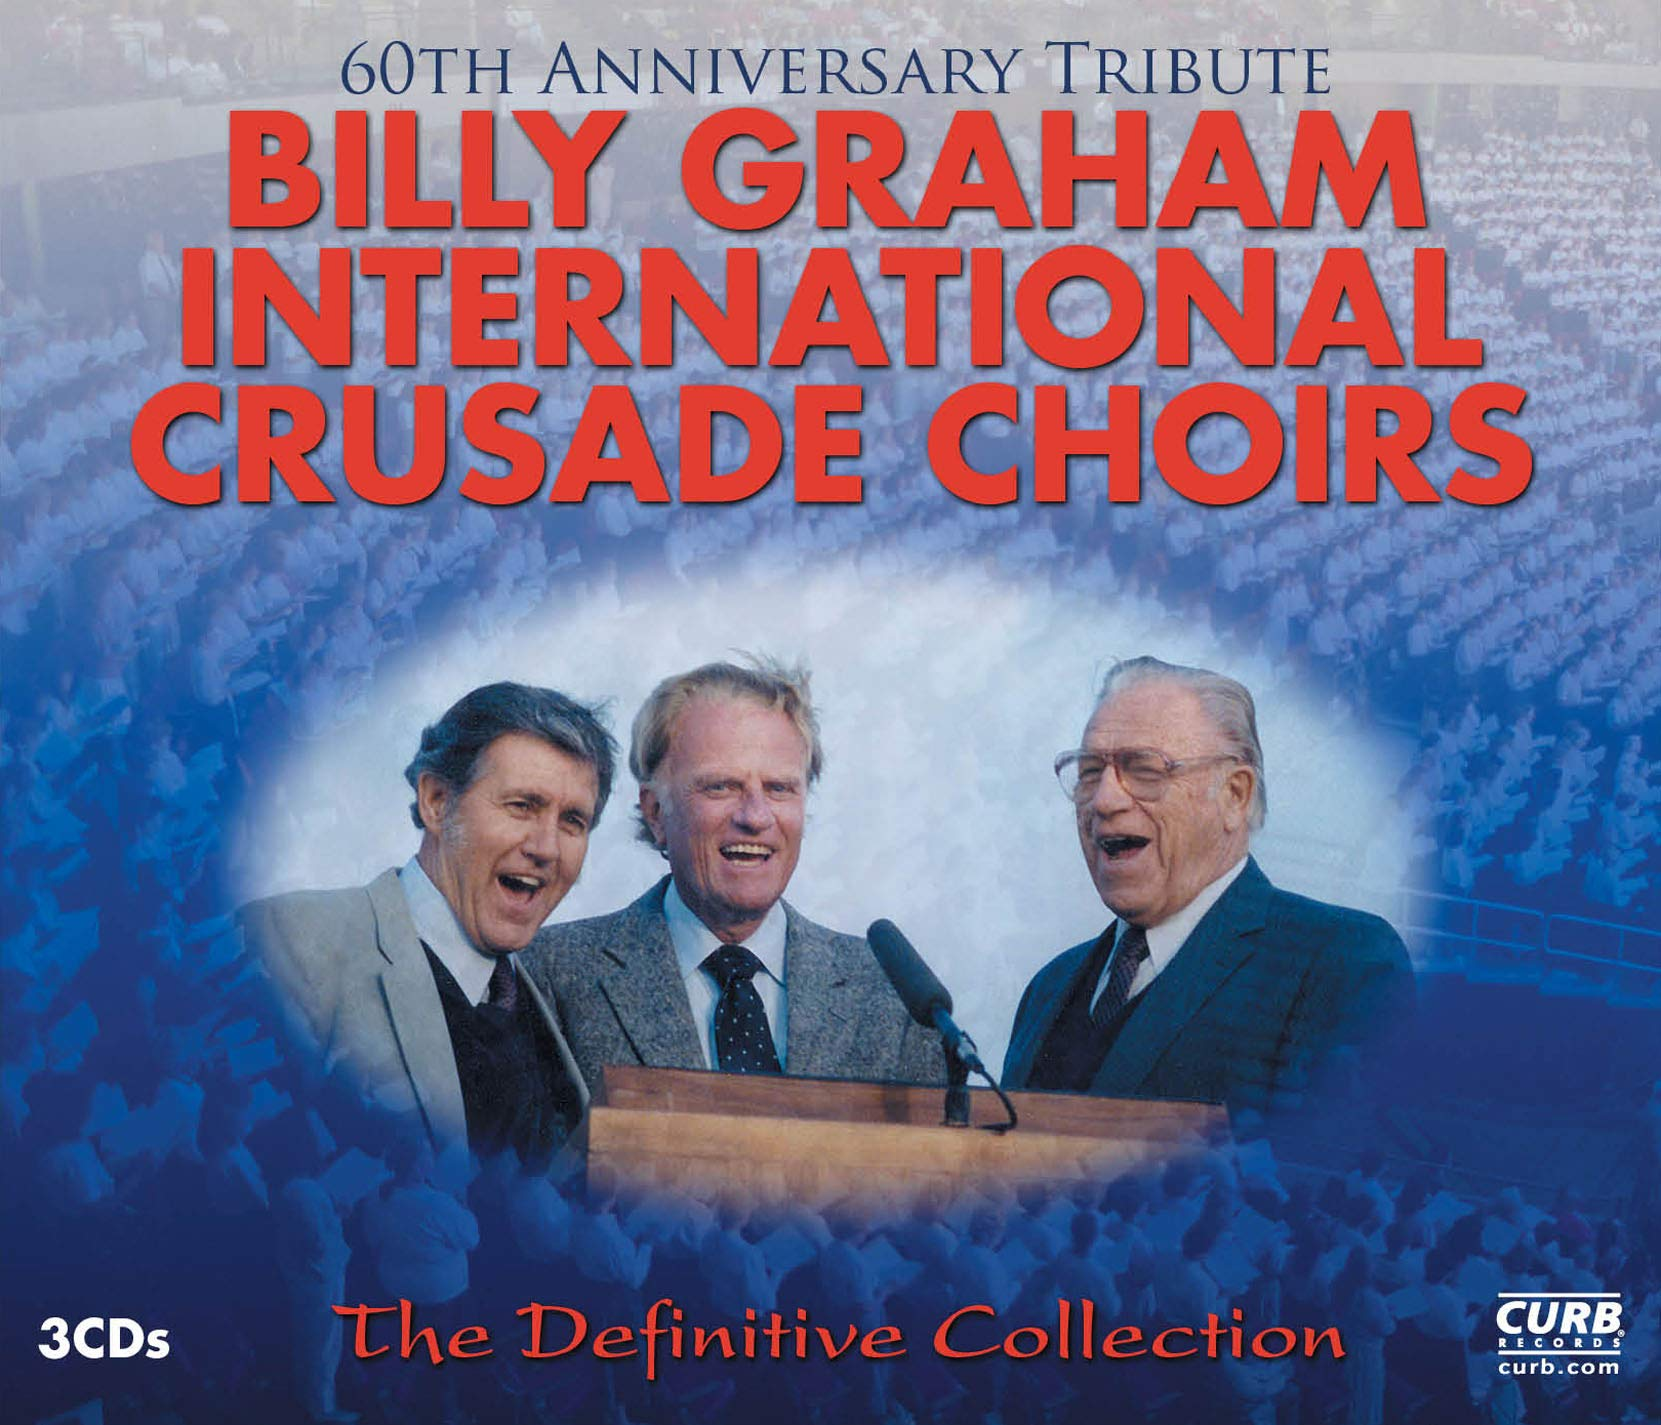 The Billy Graham International Crusade Choirs - The Definitive Collection (3CD) by New Day Christian Distributors